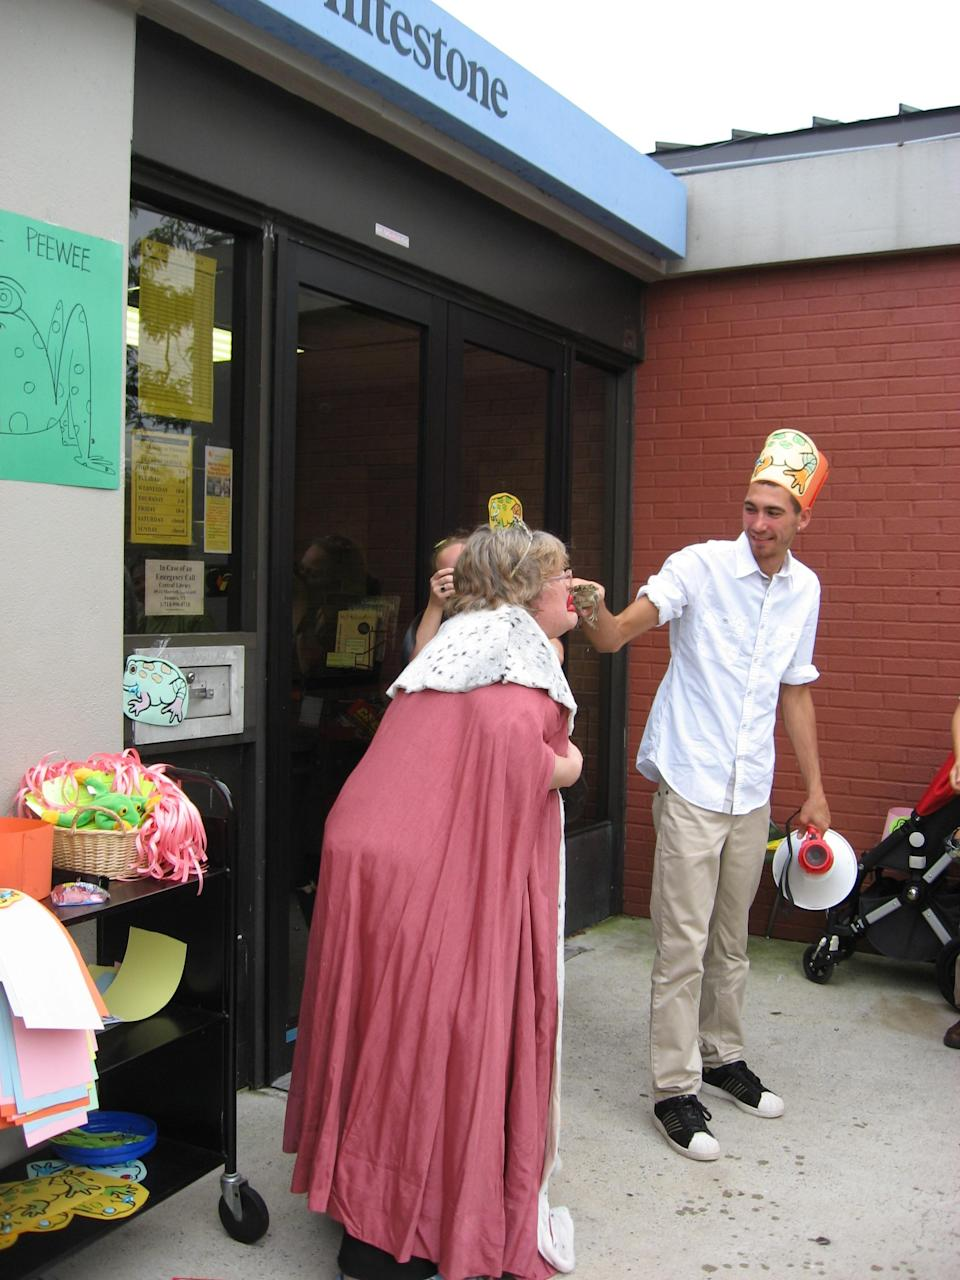 """<div class=""""caption-credit""""> Photo by: Queens Library</div><b>2011 Challenge: Read 3,000 books <br> Final Results: 6,900 books</b> <br> """"I wore wax lips and kissed a frog named Pee Wee,"""" says Scatena. """"Unfortunately, he peed while I was holding him, but it was still fun. After the kiss, I shielded my body with a towel and quickly put on a robe and crown to became a princess."""""""